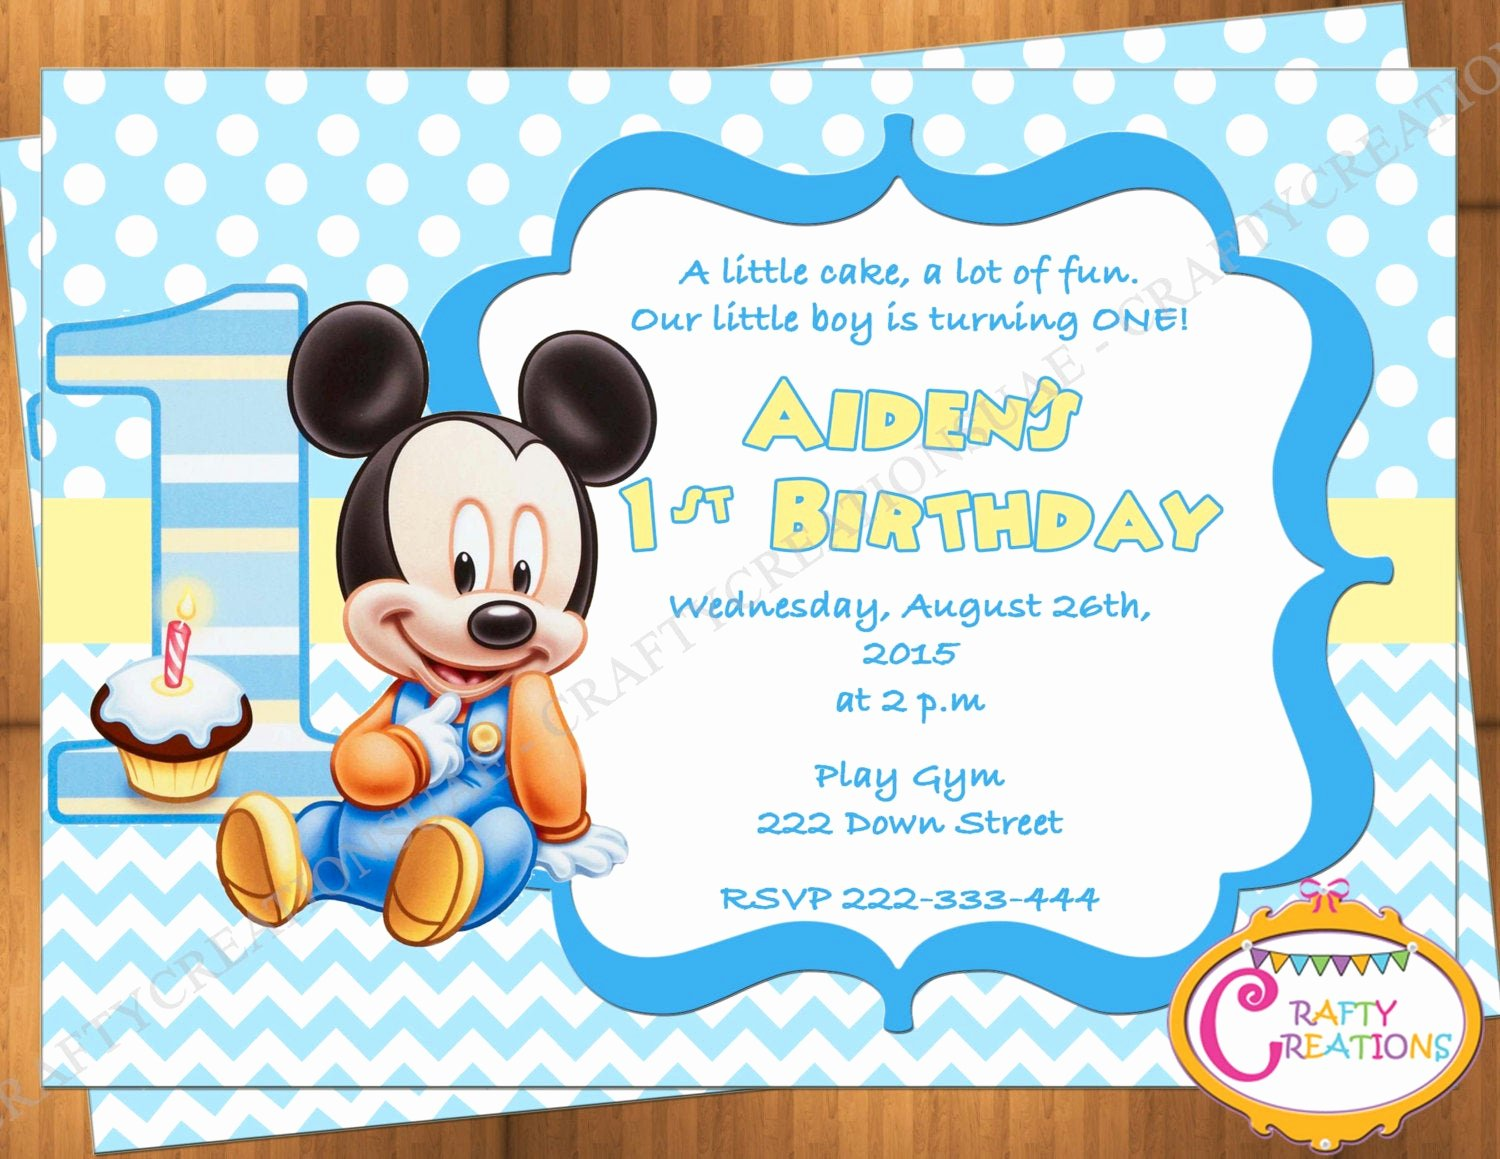 Baby Mickey Mouse Birthday Invitations Awesome Baby Mickey Mouse First Birthday Invitation Mickey Mouse 1st